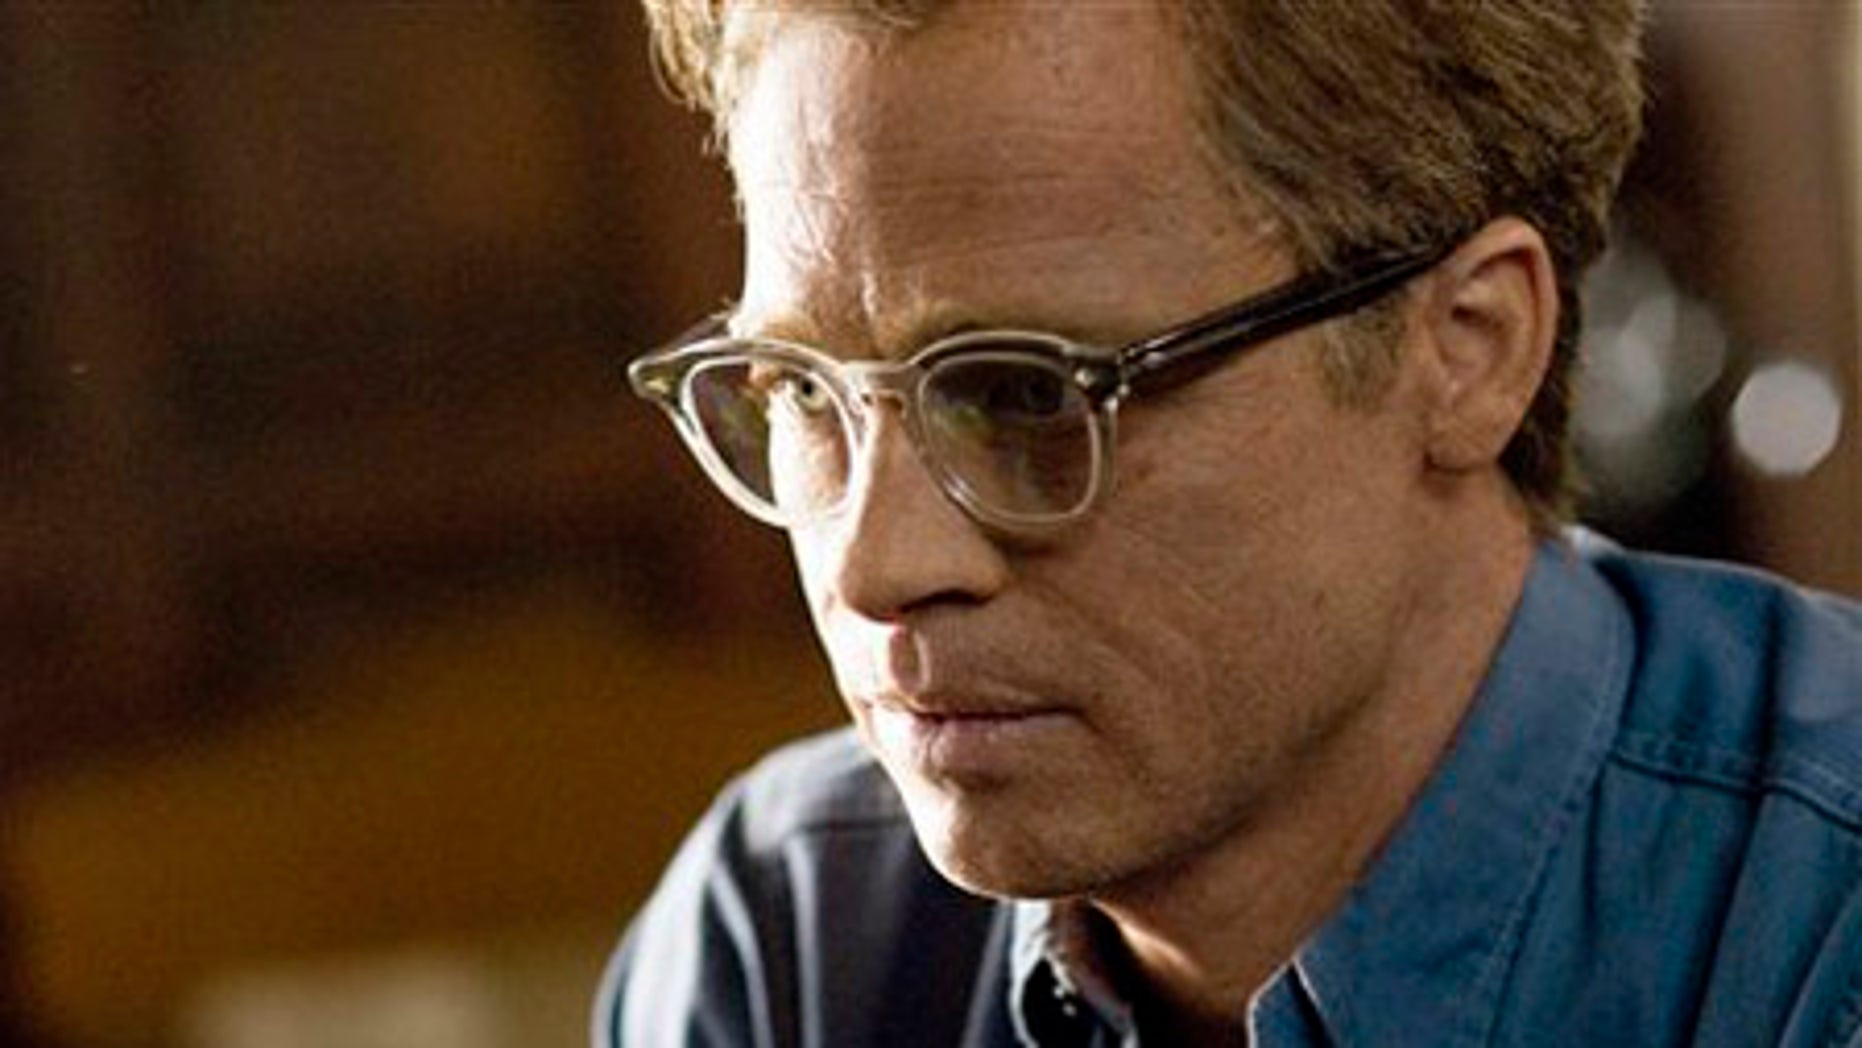 """**FOR USE AS DESIRED** In this image released by Paramount Pictures, Brad Pitt is shown in a scene from, """"The Curious Case of Benjamin Button.""""  Pitt was nominated for an Academy Award for best actor, Thursday, Jan. 22, 2009, for his role in """"The Curious Case of Benjamin Button."""" The 81st Oscars will be presented Feb. 22 in a ceremony airing on ABC from Hollywood's Kodak Theatre.  (AP Photo/Paramount Pictures, Merrick Morton) ** NO SALES **"""